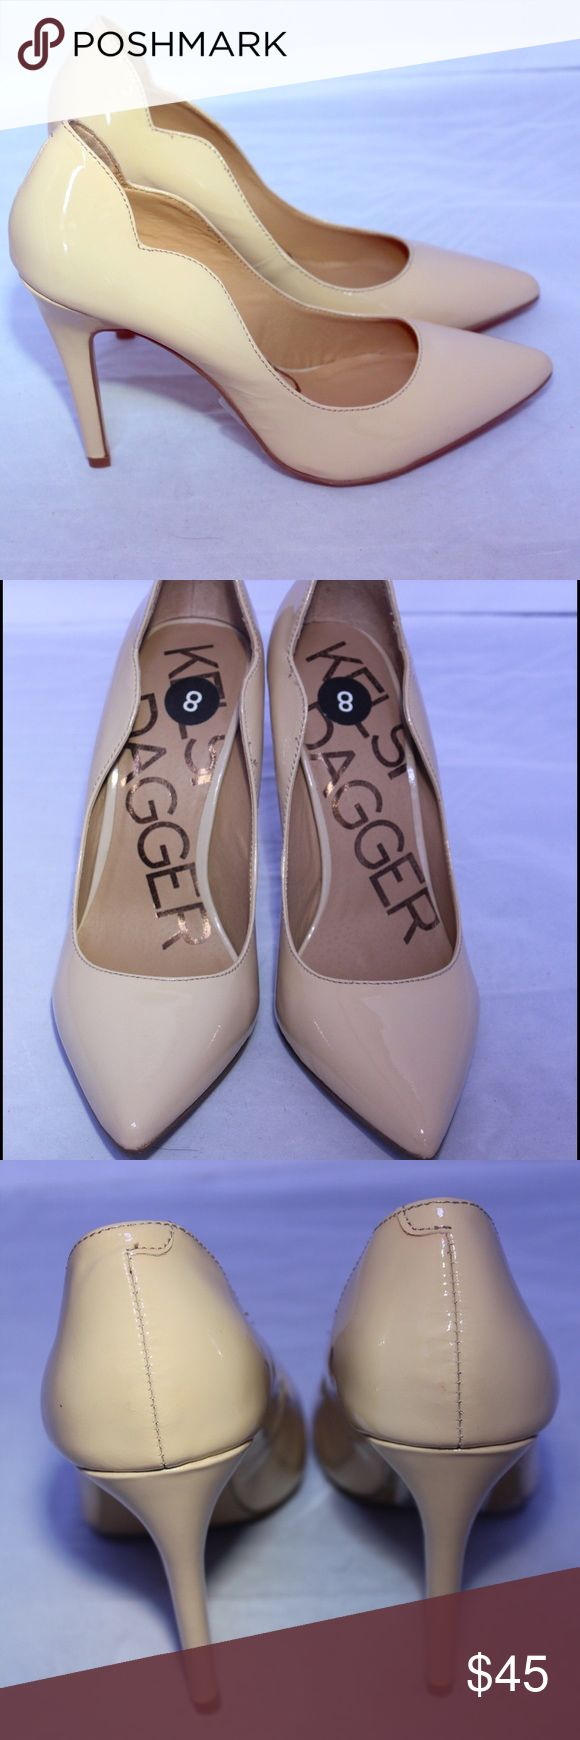 Kelsi Dagger Nude Patent Leather Pymps 8 NEW New Kelsi Dagger patent leather pumps. Kelsi Dagger Shoes Heels